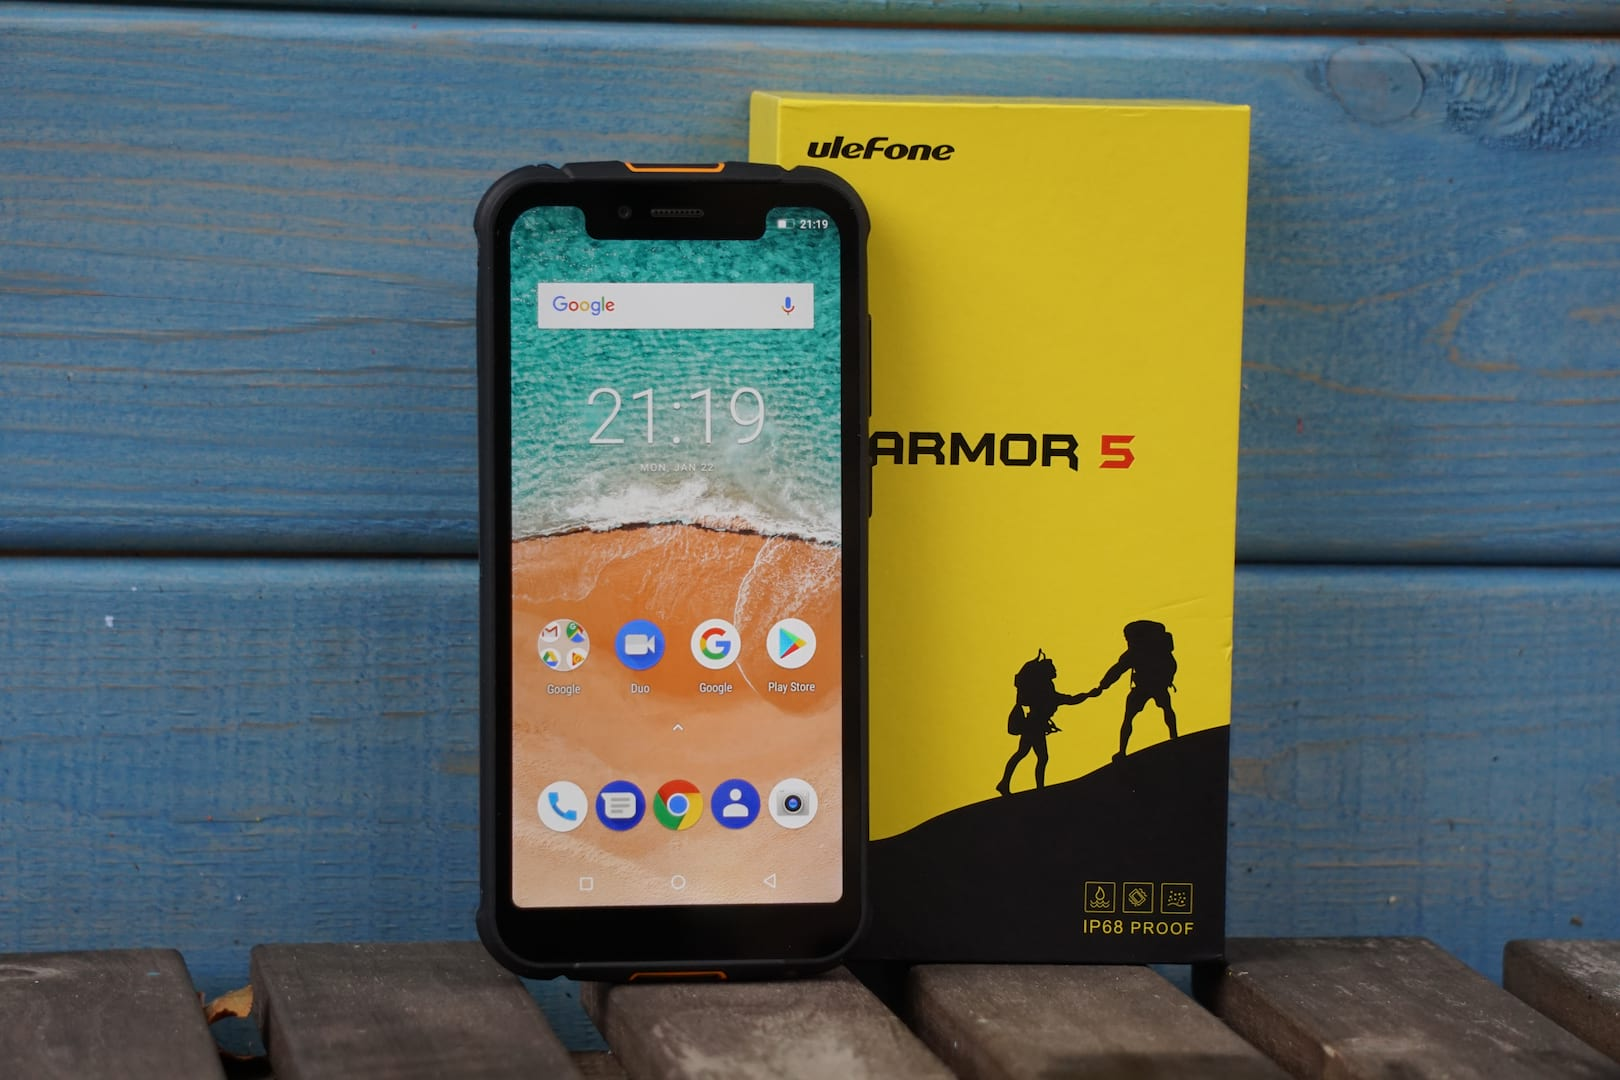 First Look: Ulefone Armor 5 A Rugged Smartphone That Doesn't Look Like A Rubber Brick